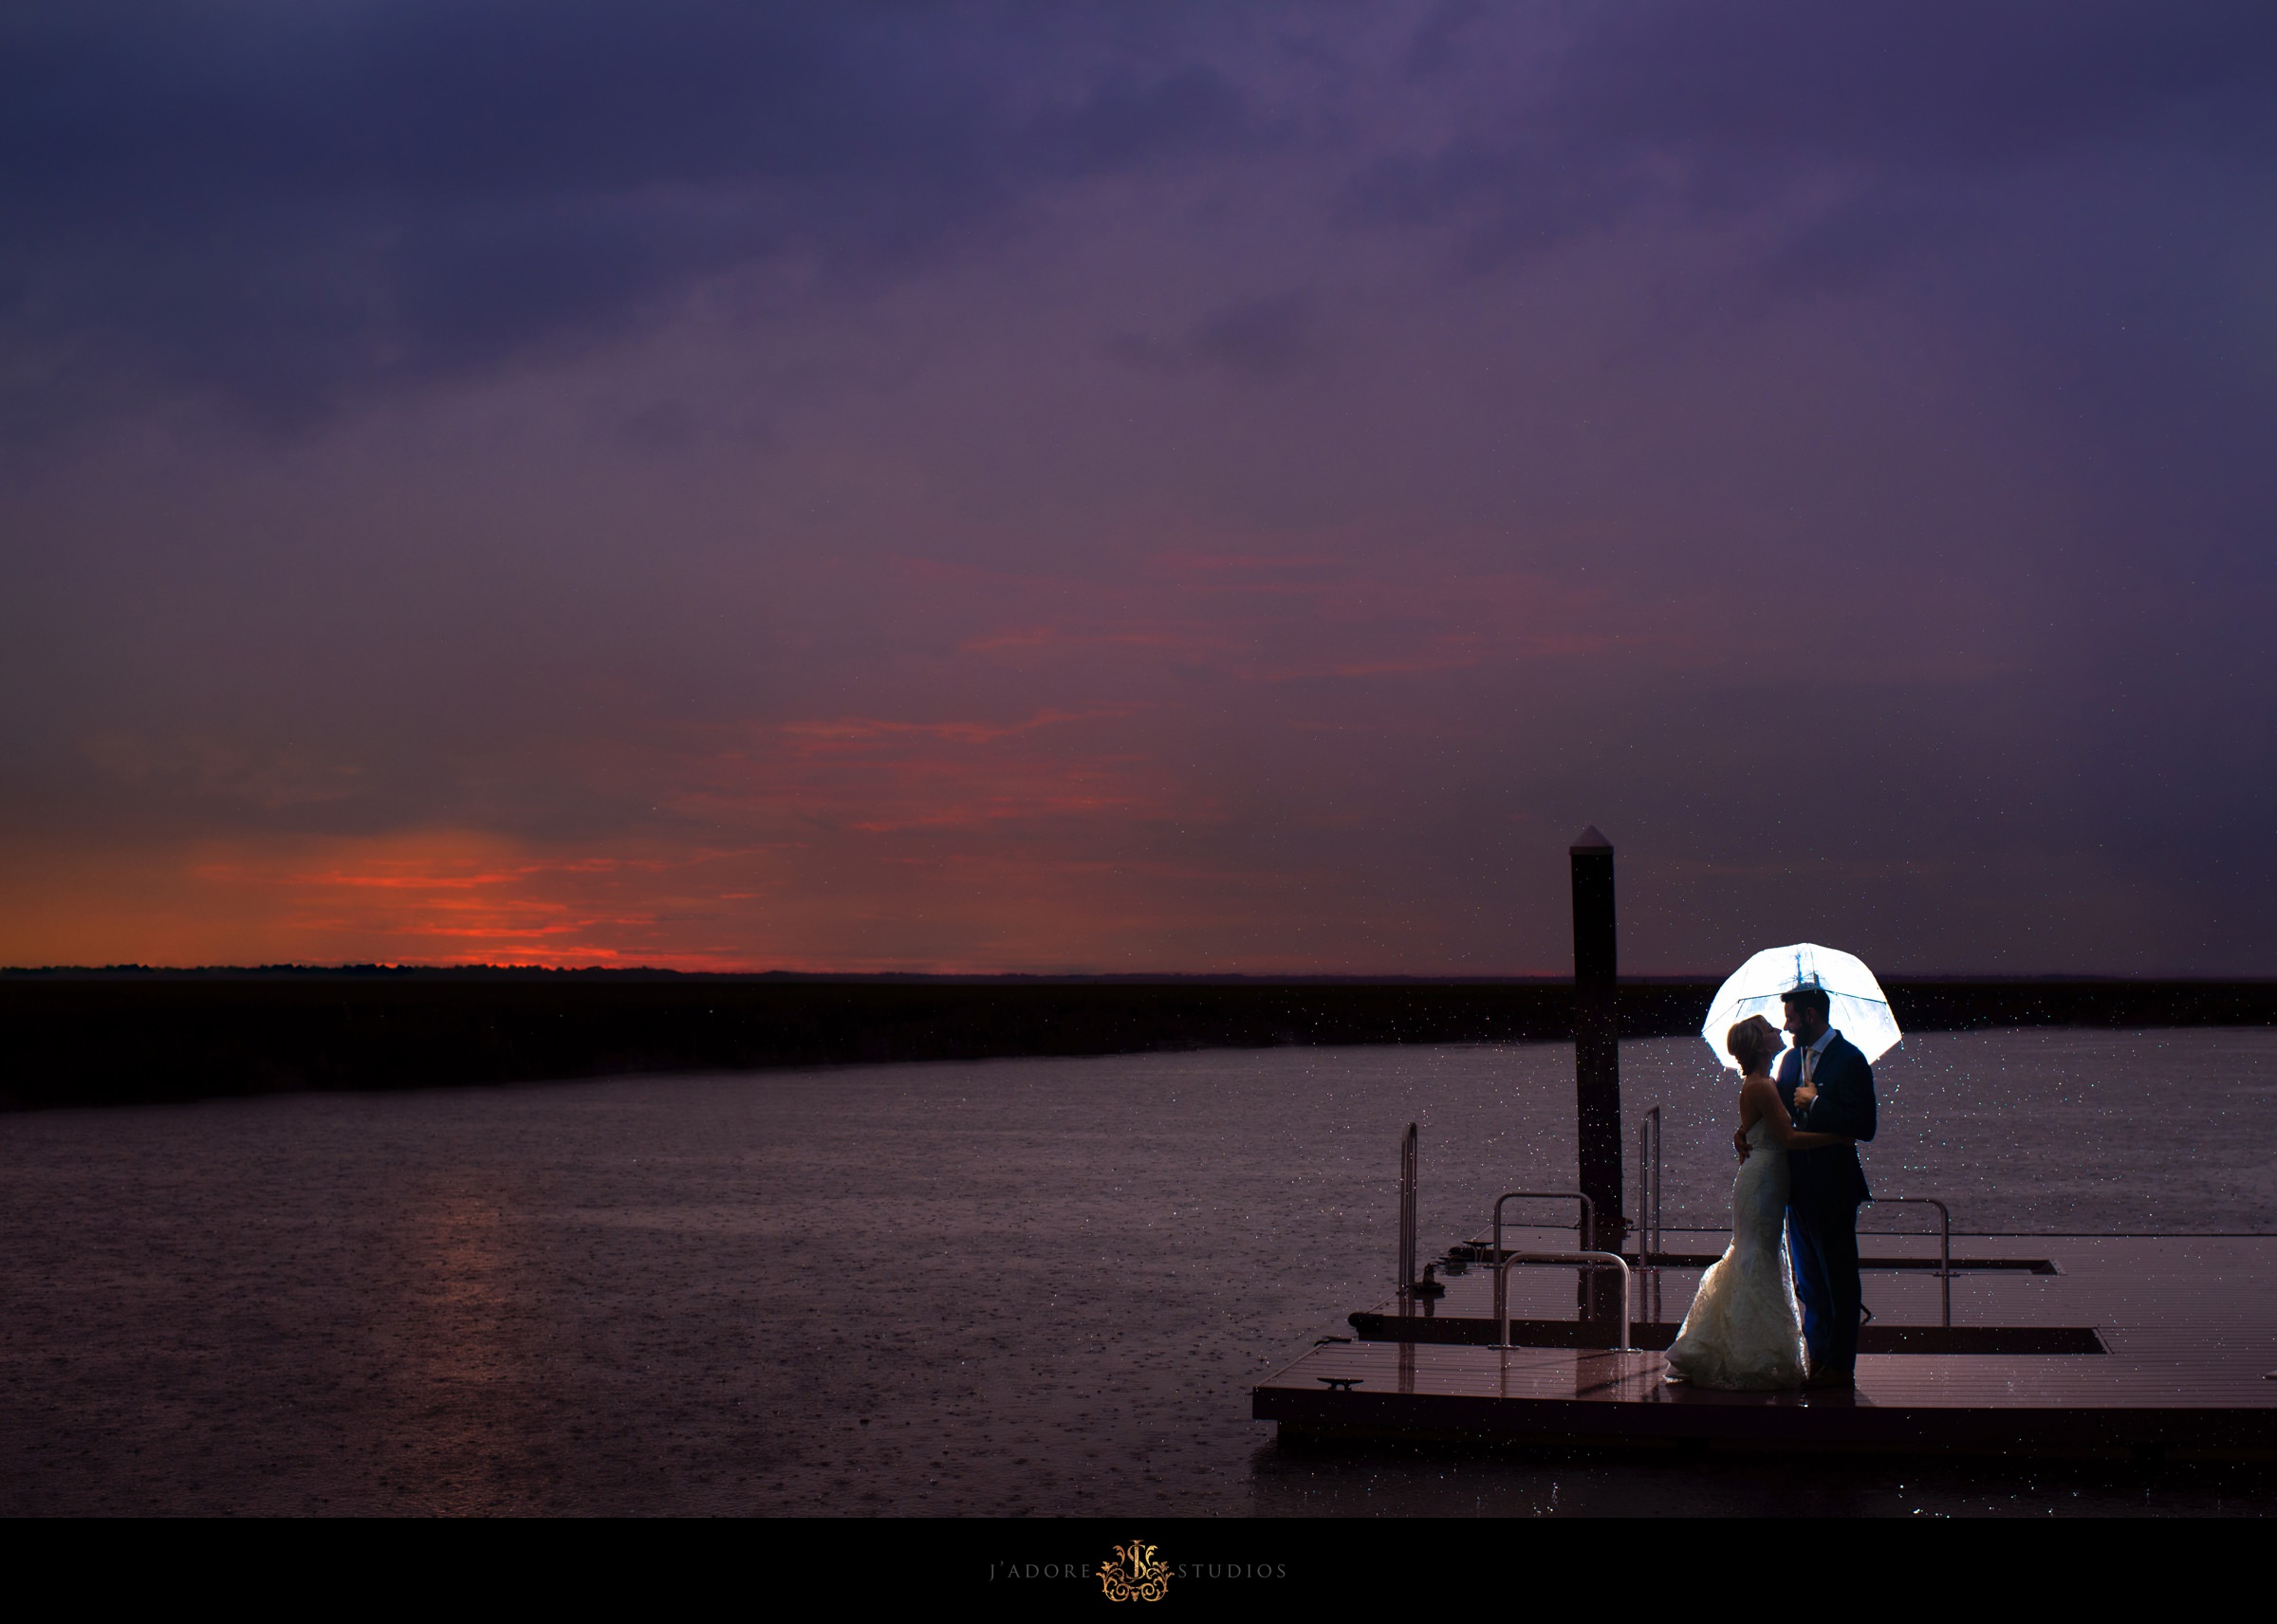 Sunset rain photo on the dock at Walkers Landing in Amelia Island